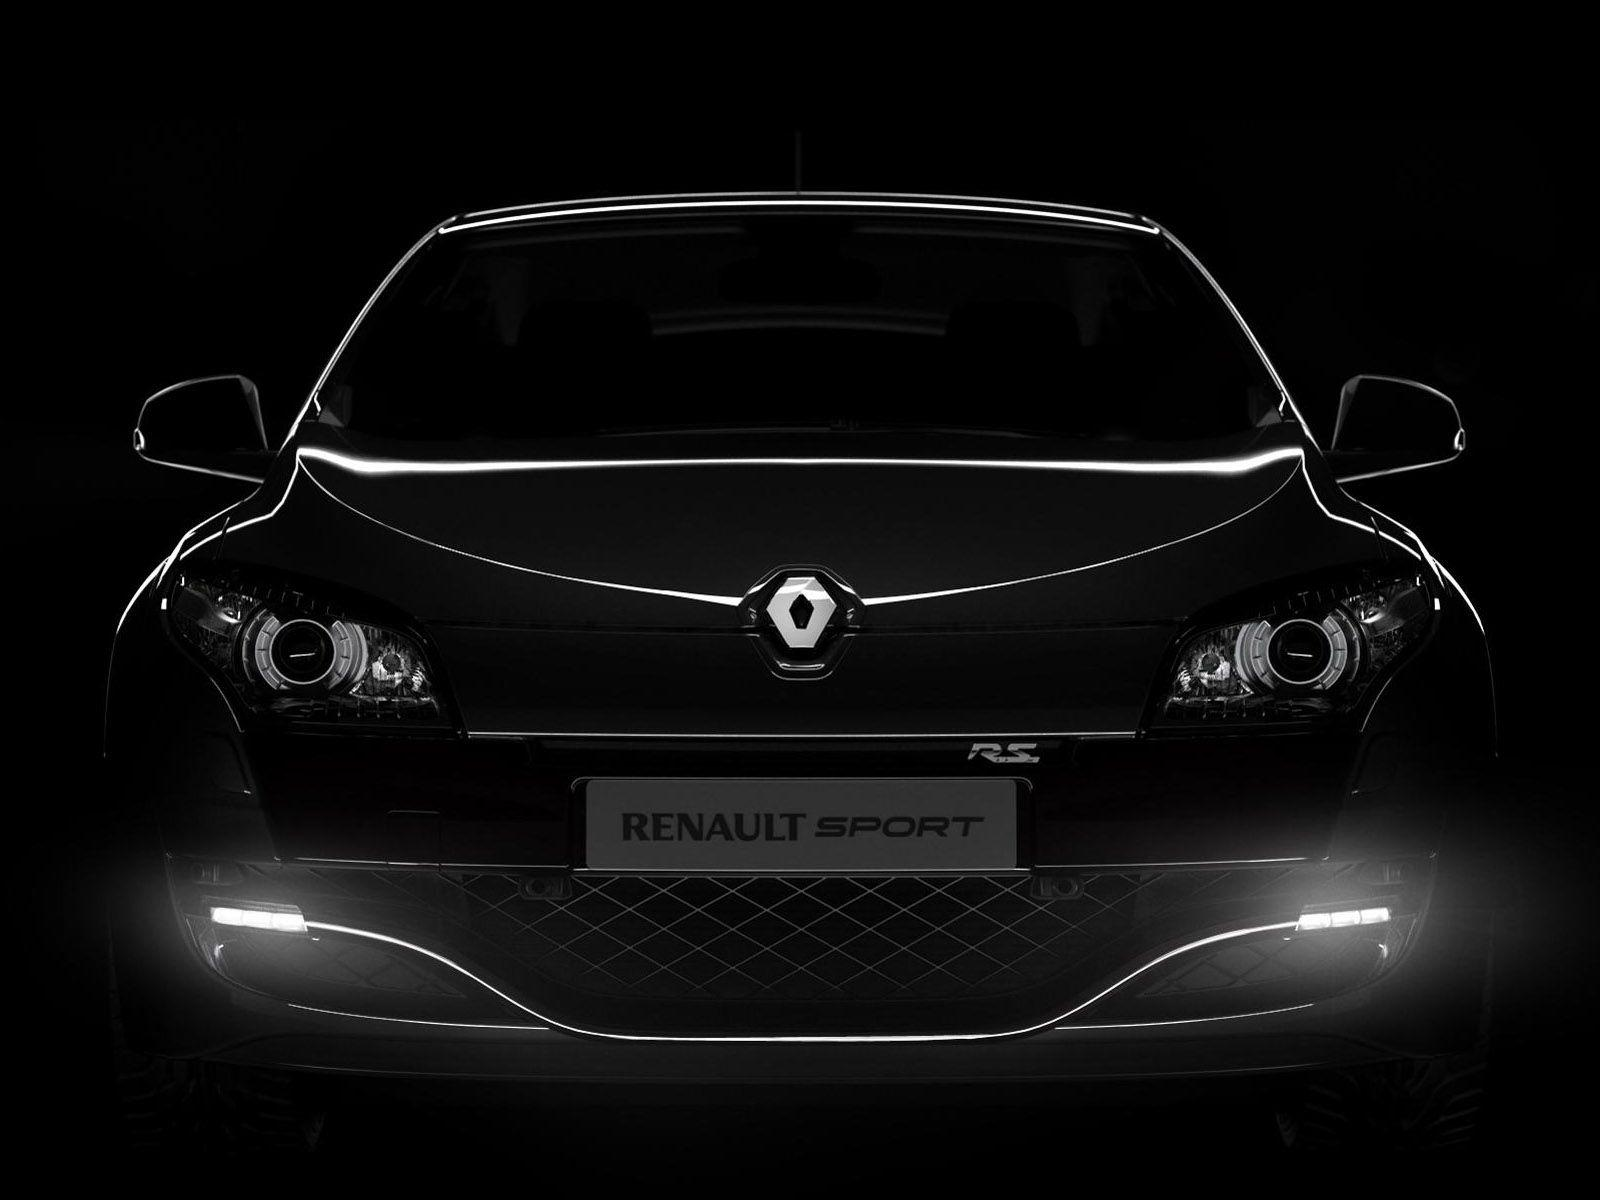 Renault Megane Wallpapers Wallpaper Cave